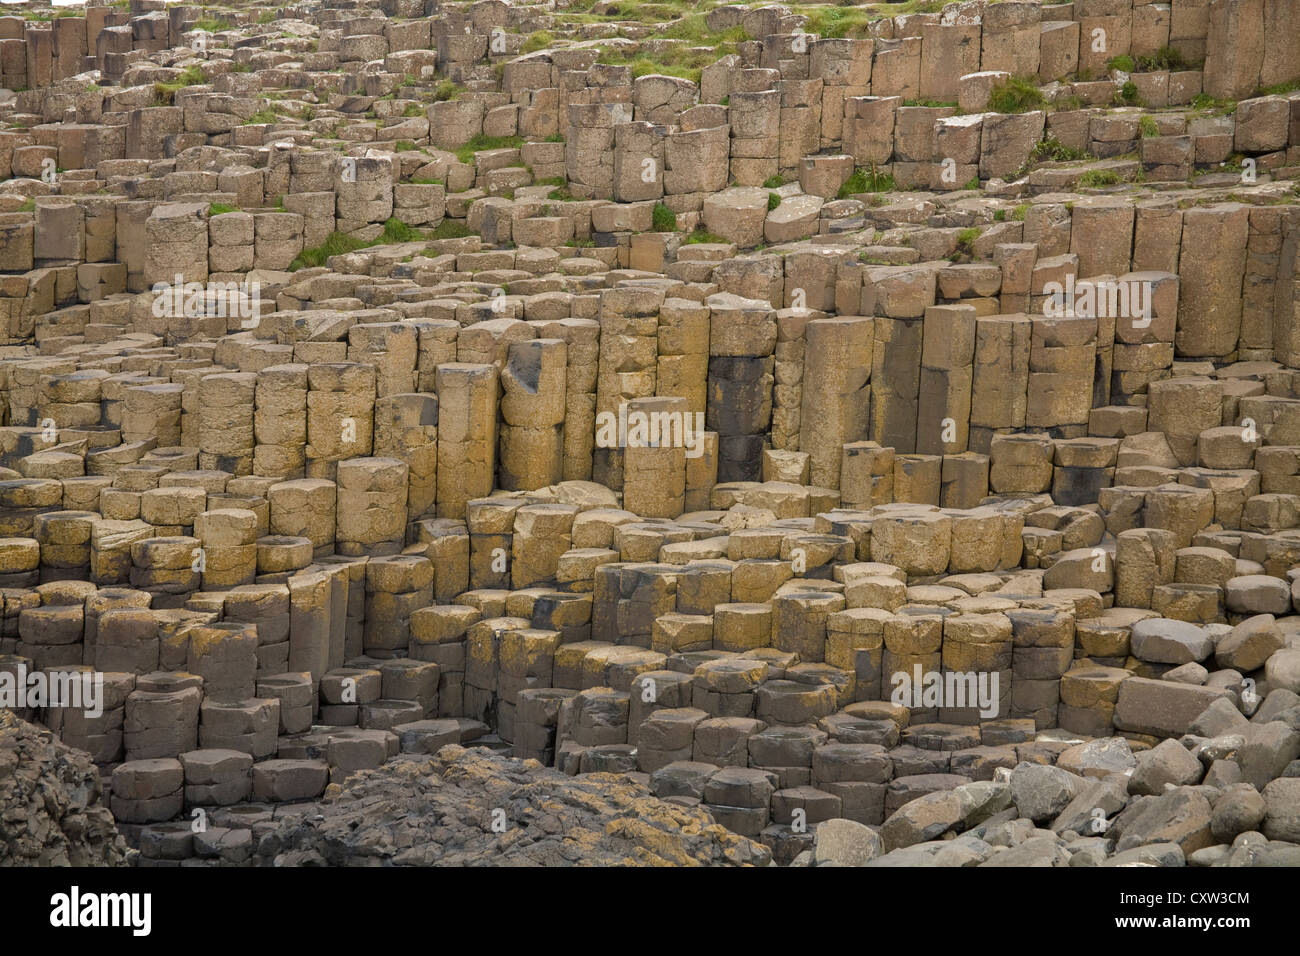 Co Antrim Northern Ireland spectacular Giant's Causeway World heritage Site and National Nature Reserve - Stock Image